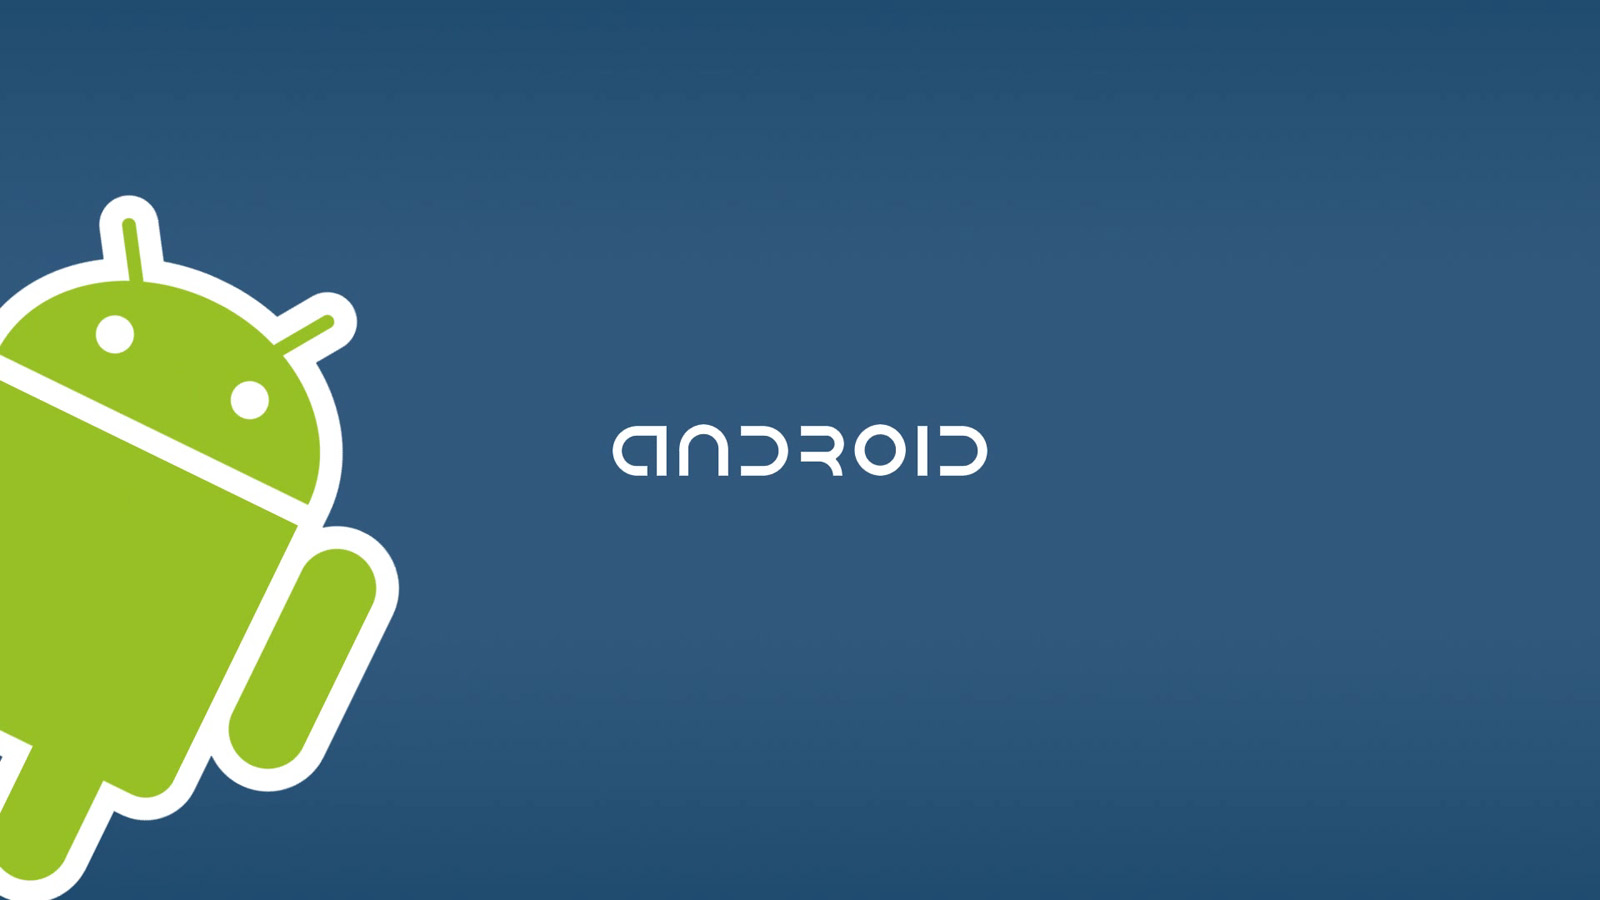 Аndroid